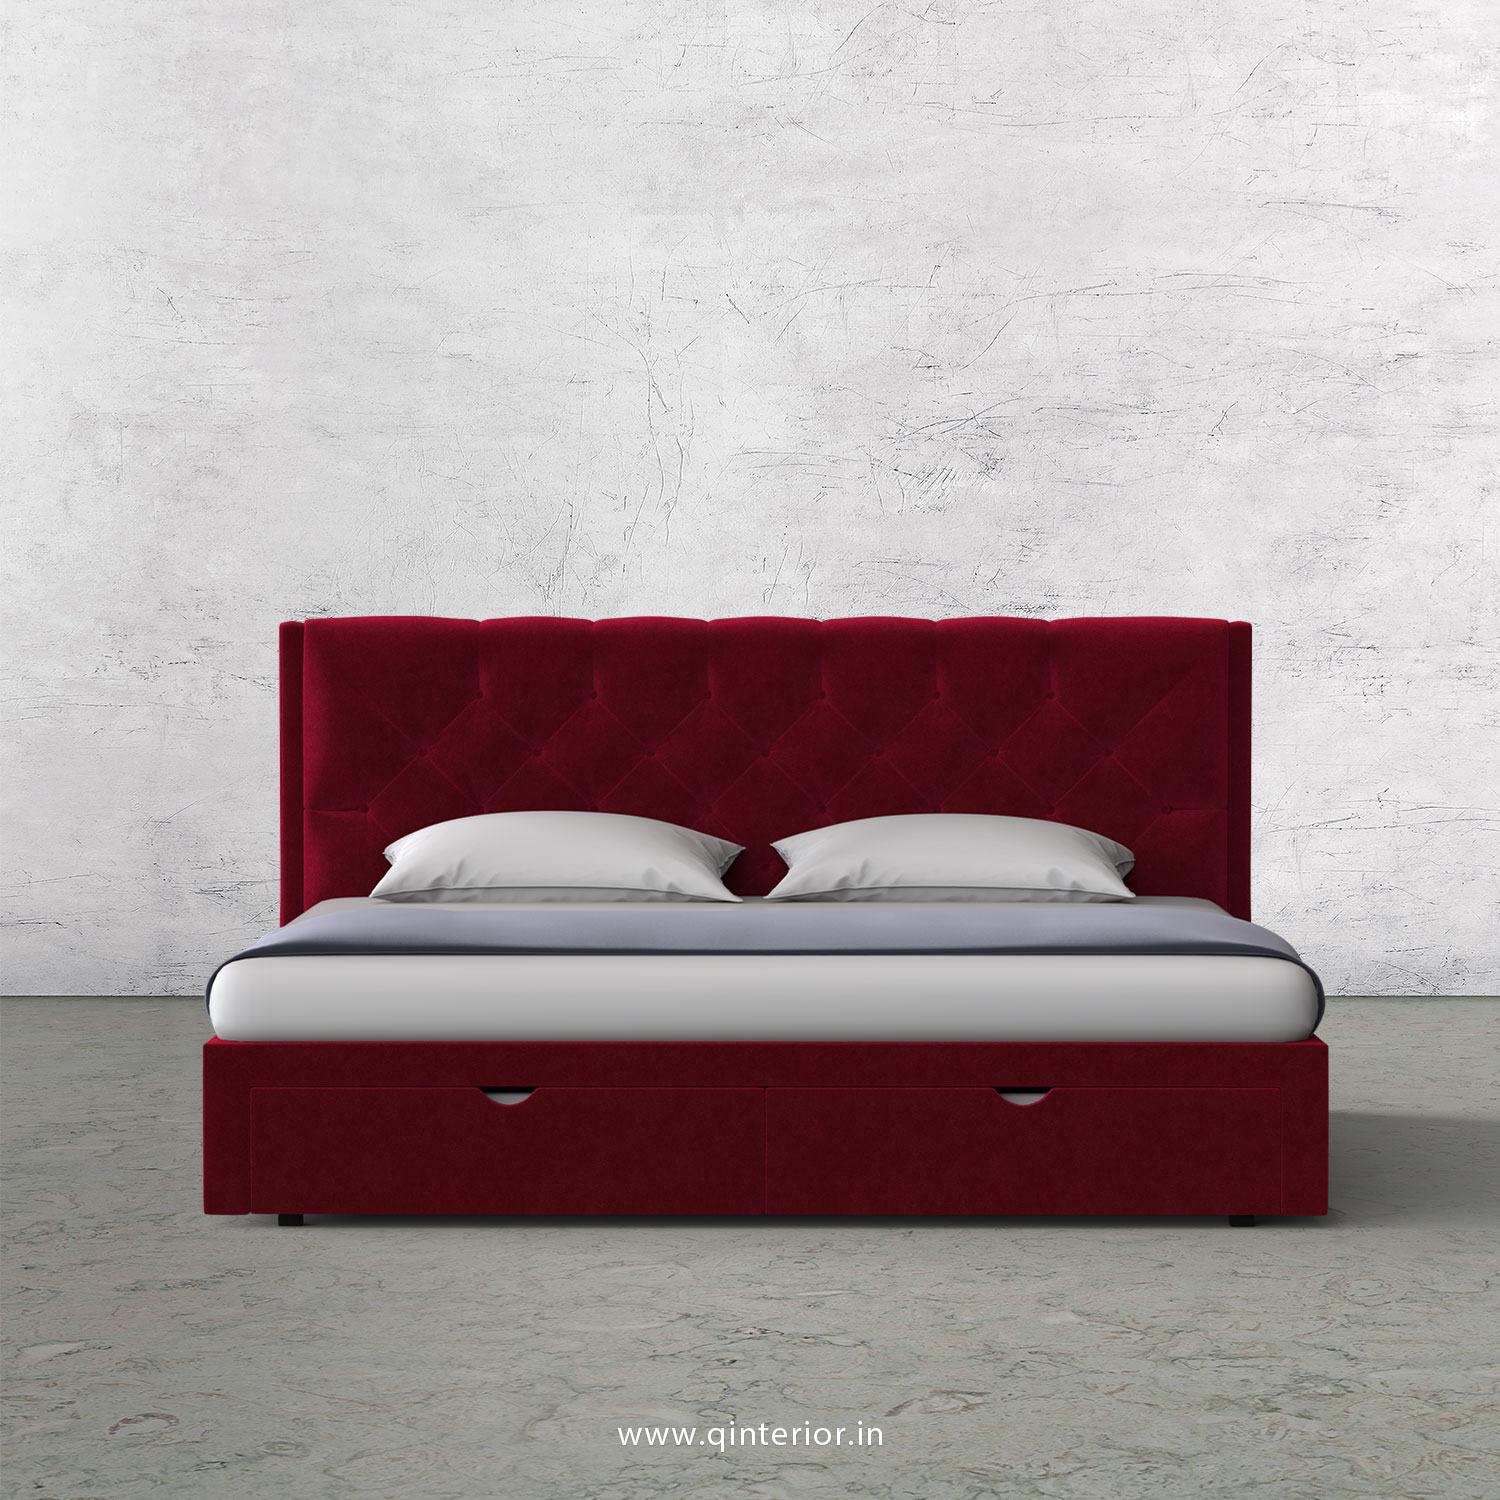 Scorpius King Size Storage Bed in Velvet Fabric - KBD001 VL08